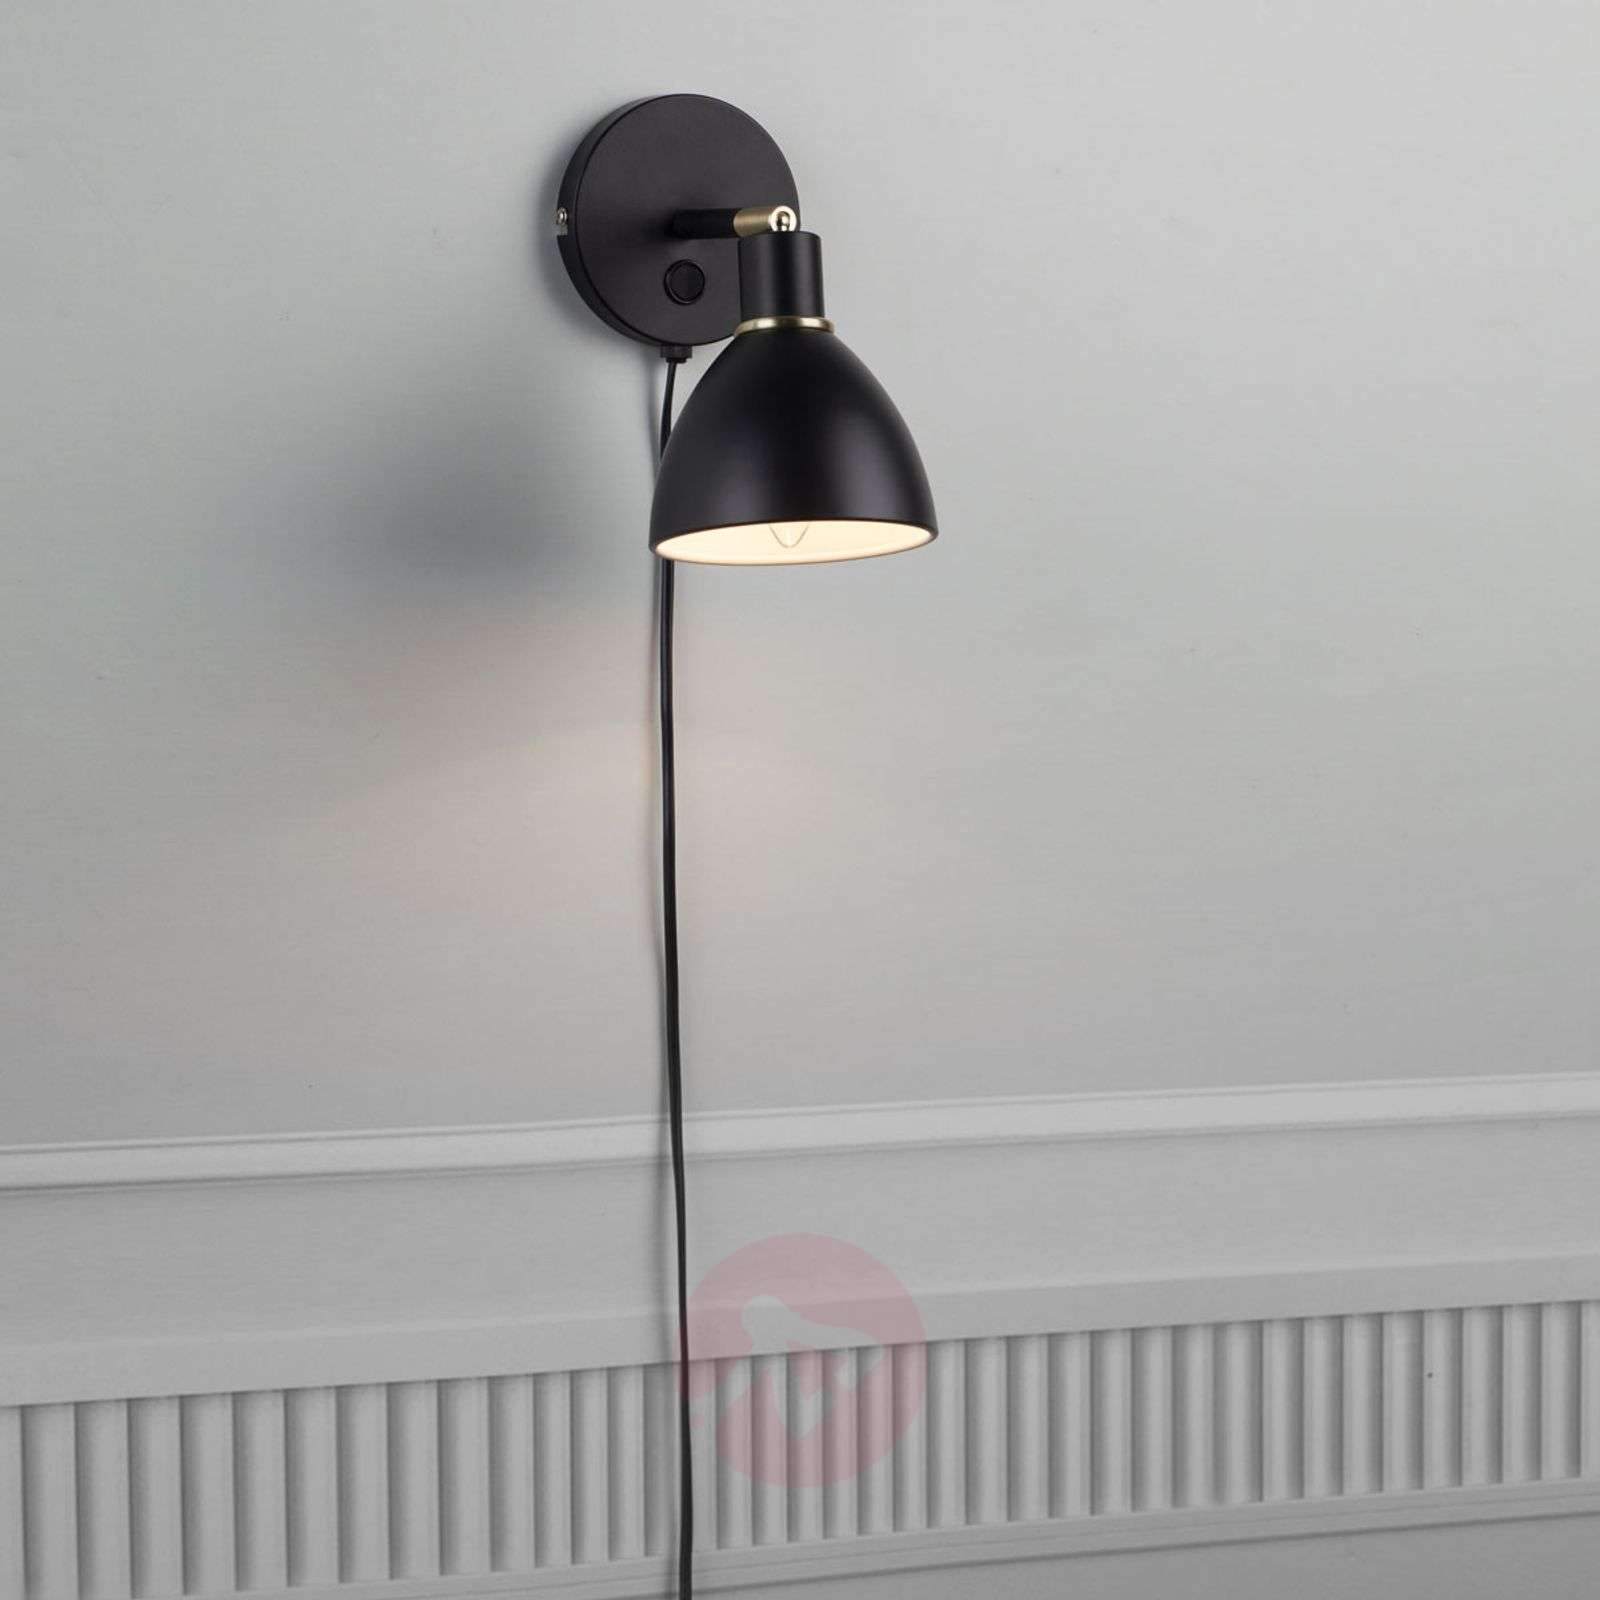 Black wall light Ray with a pivotable lampshade-7005984-02